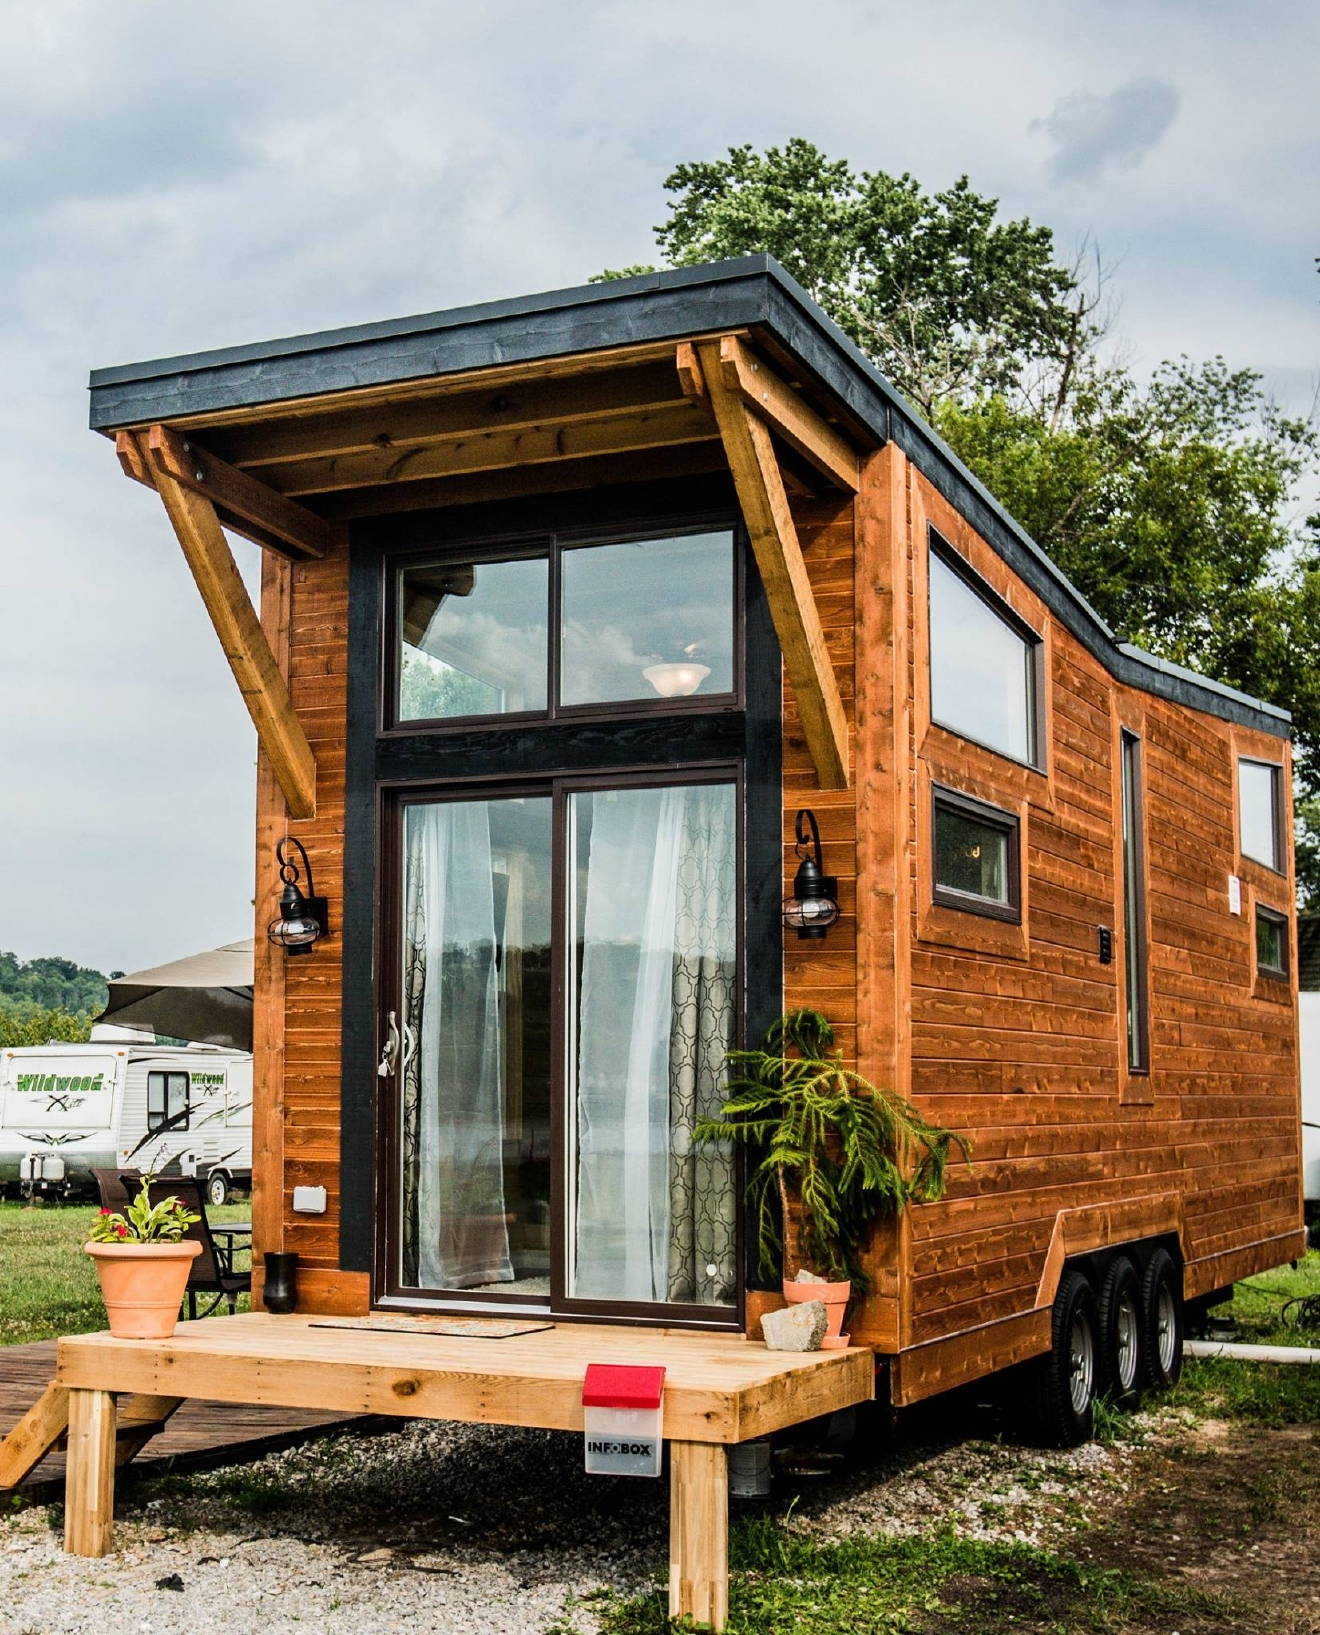 """You Can Rent This """"Tiny Home"""" For $150 Per Night"""